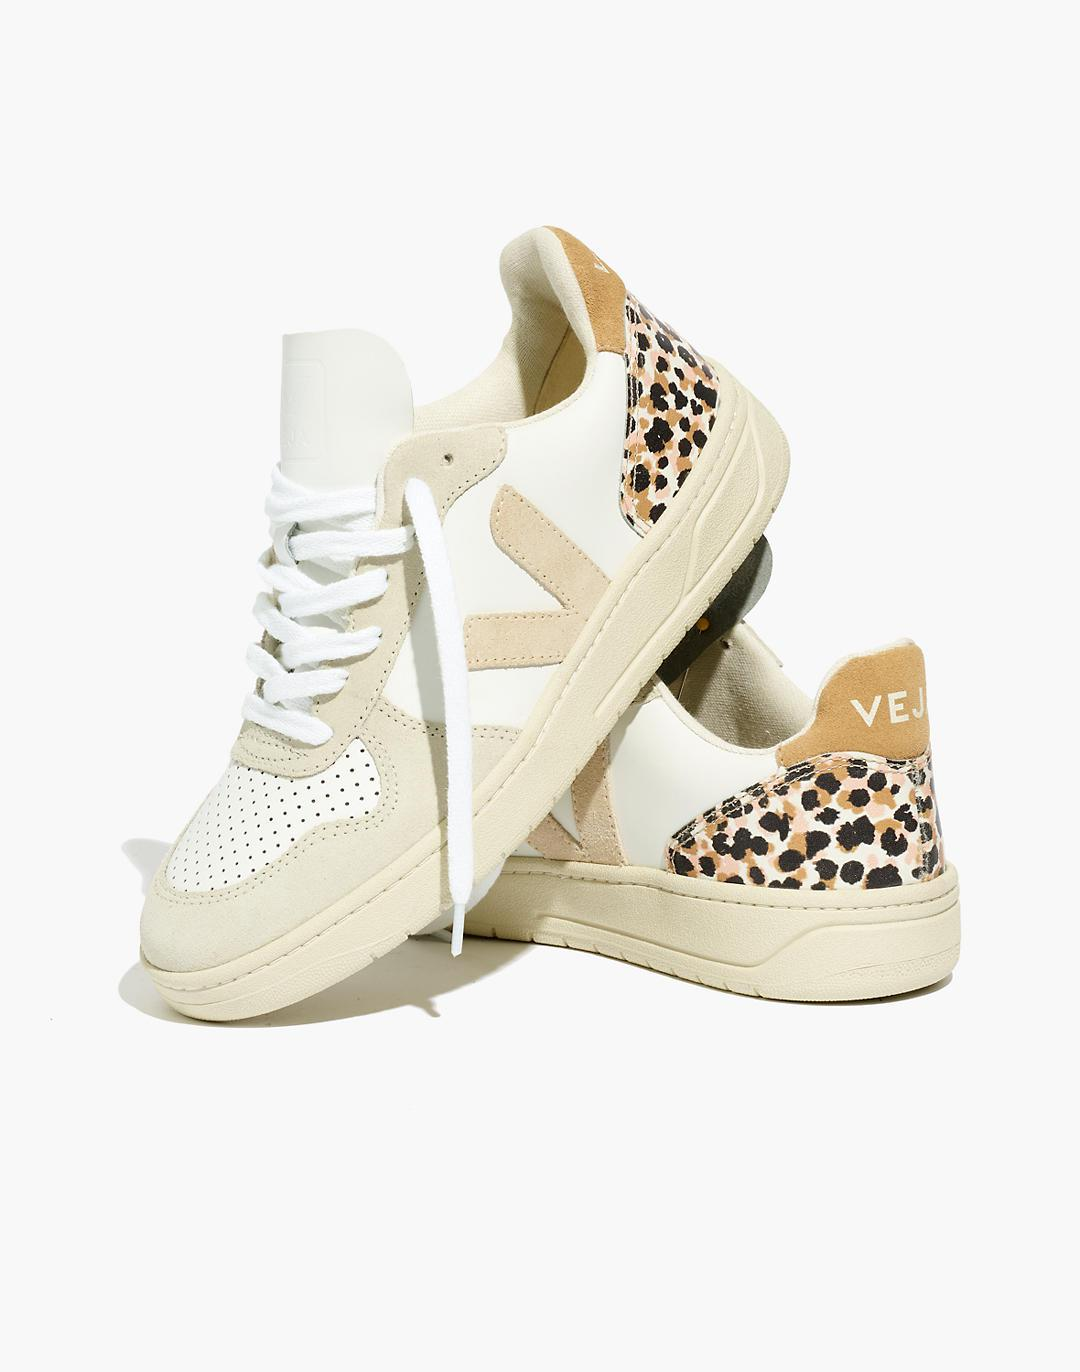 Madewell x Veja™ V-10 Sneakers in Animal Print Leather